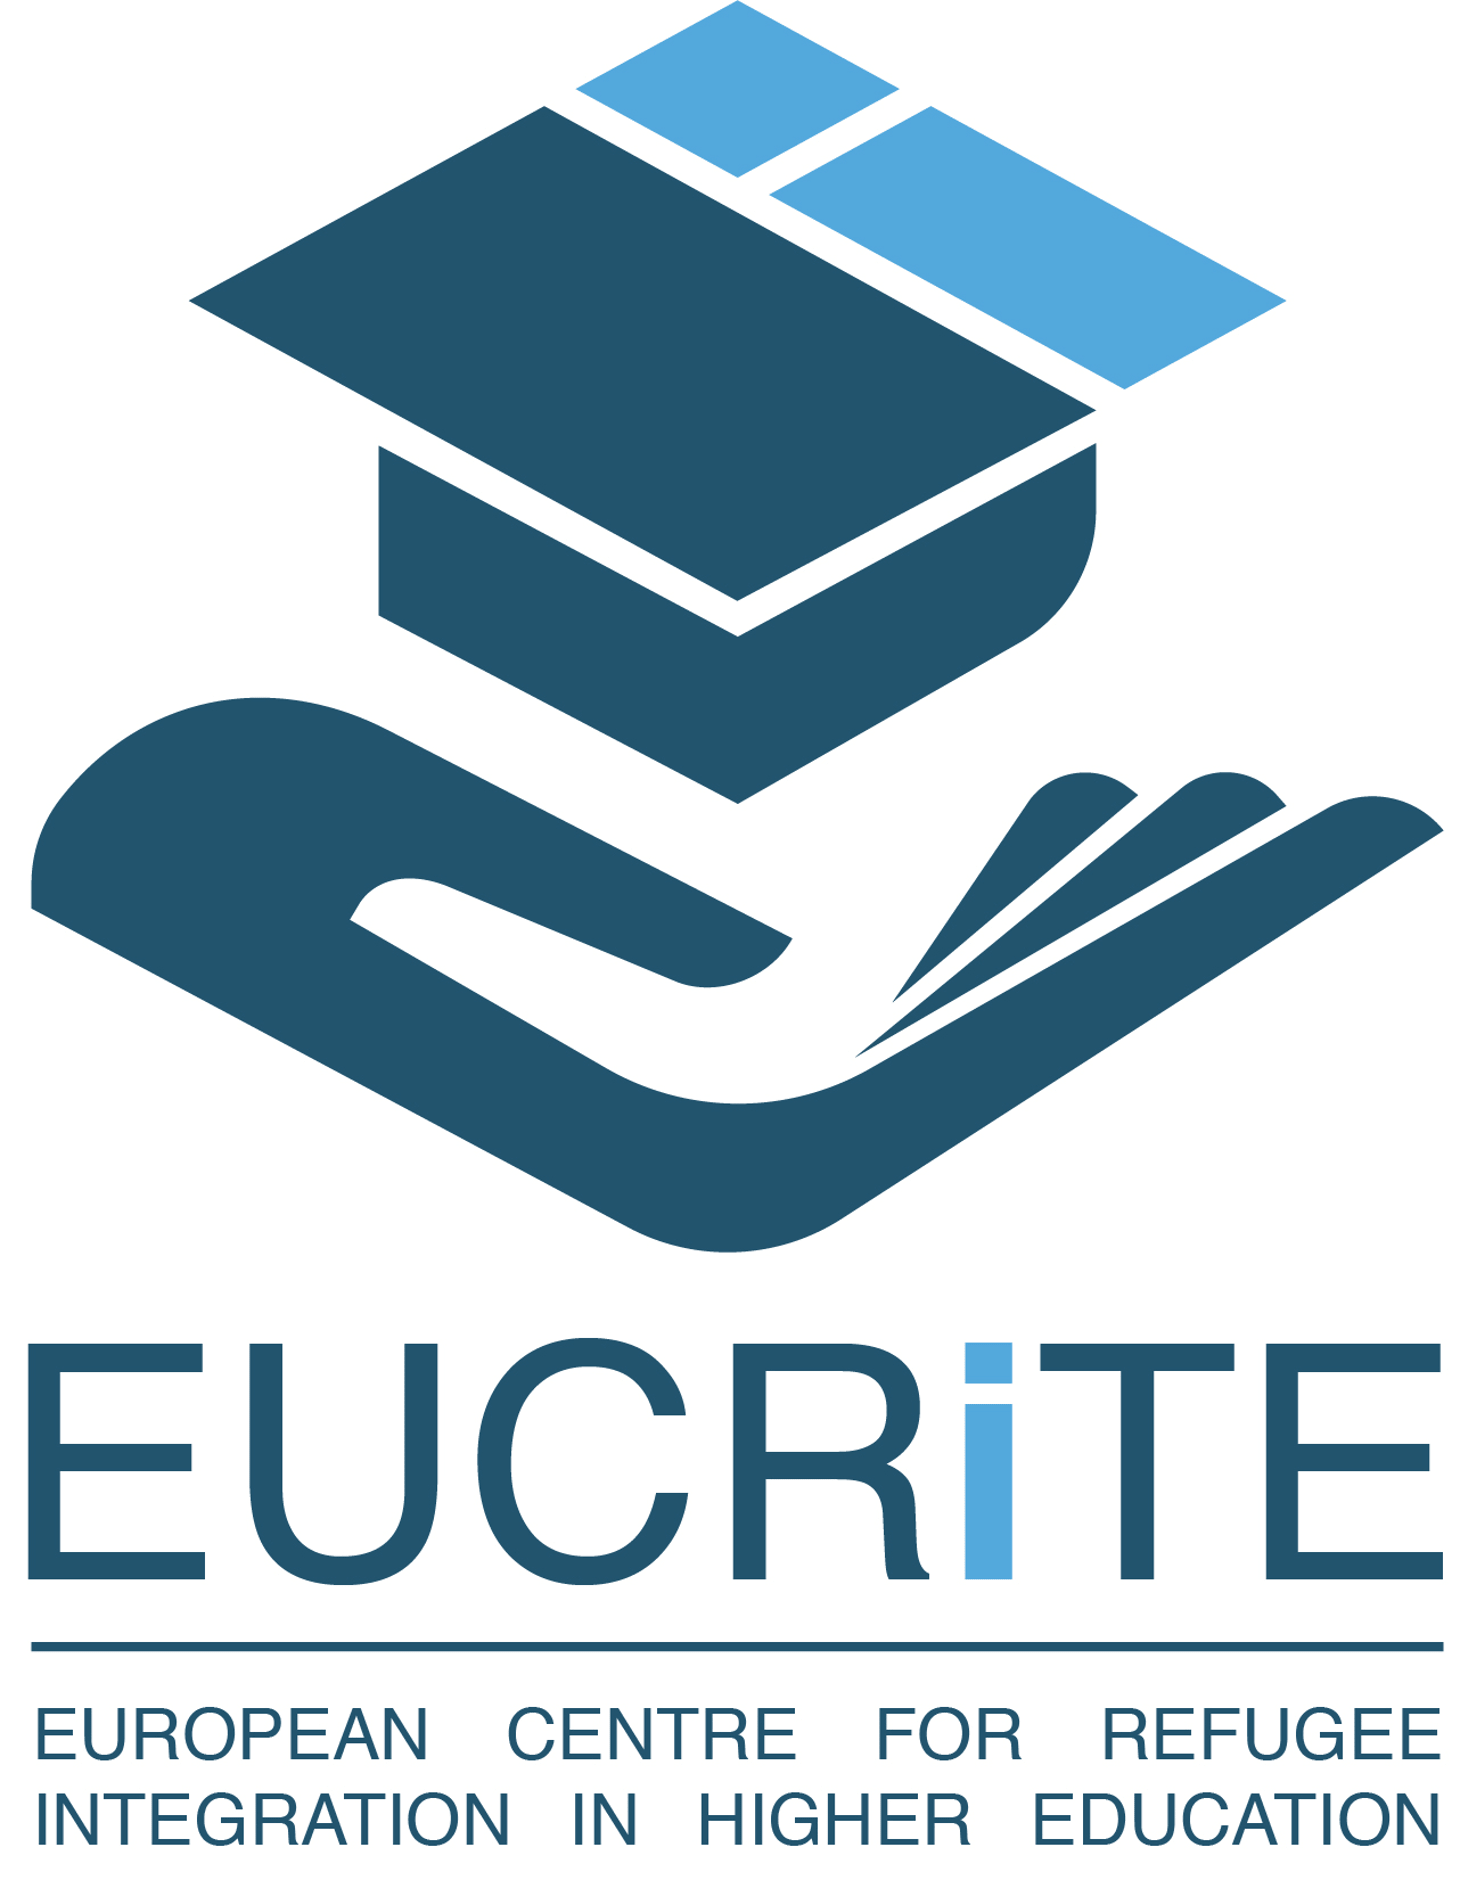 European Centre for Refugee Integration in Higher Education